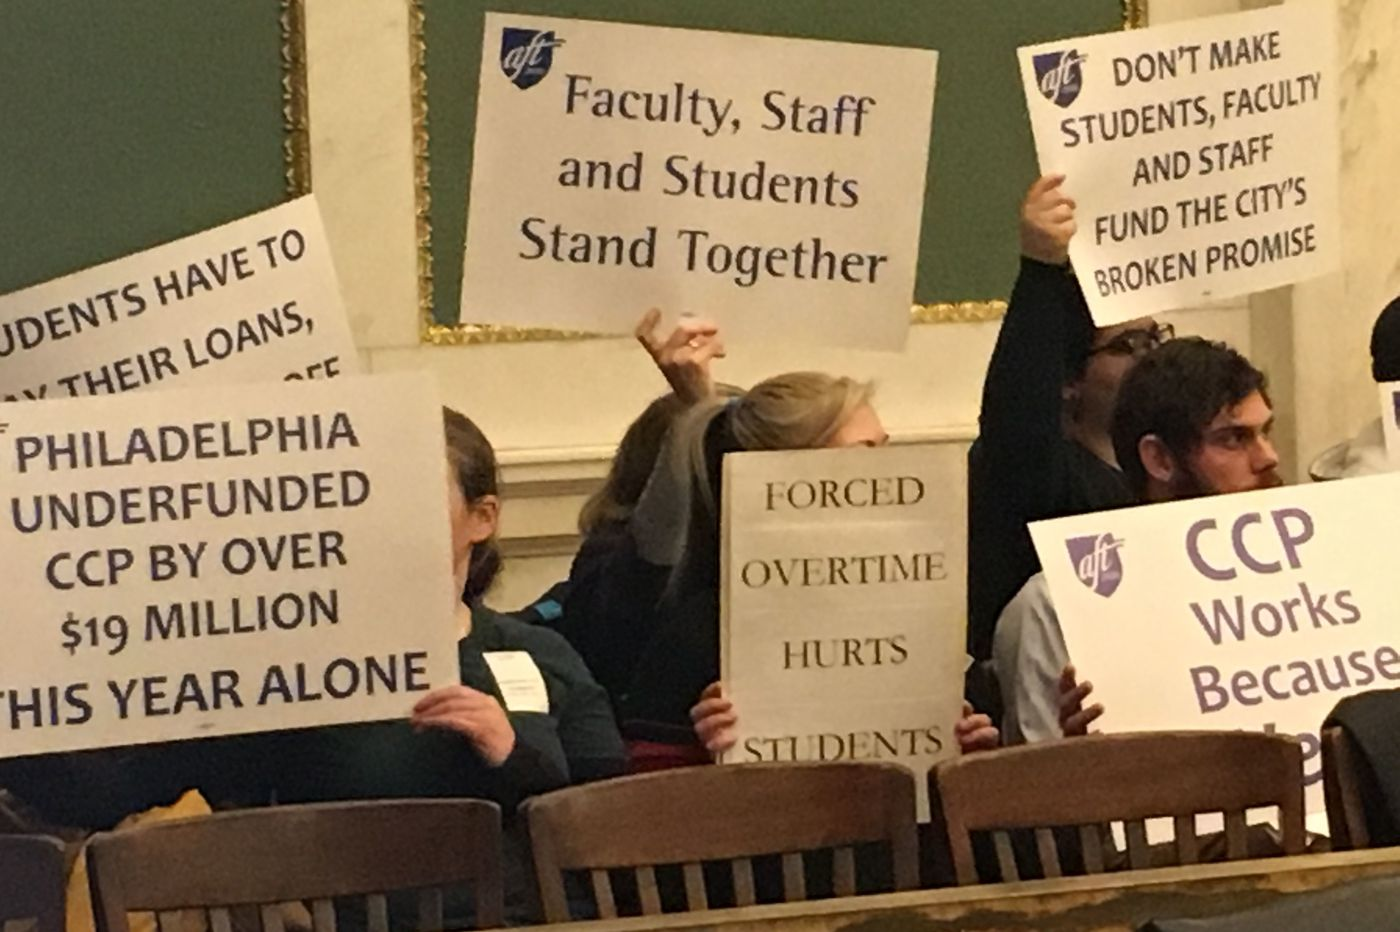 Is Philadelphia properly funding its community college?